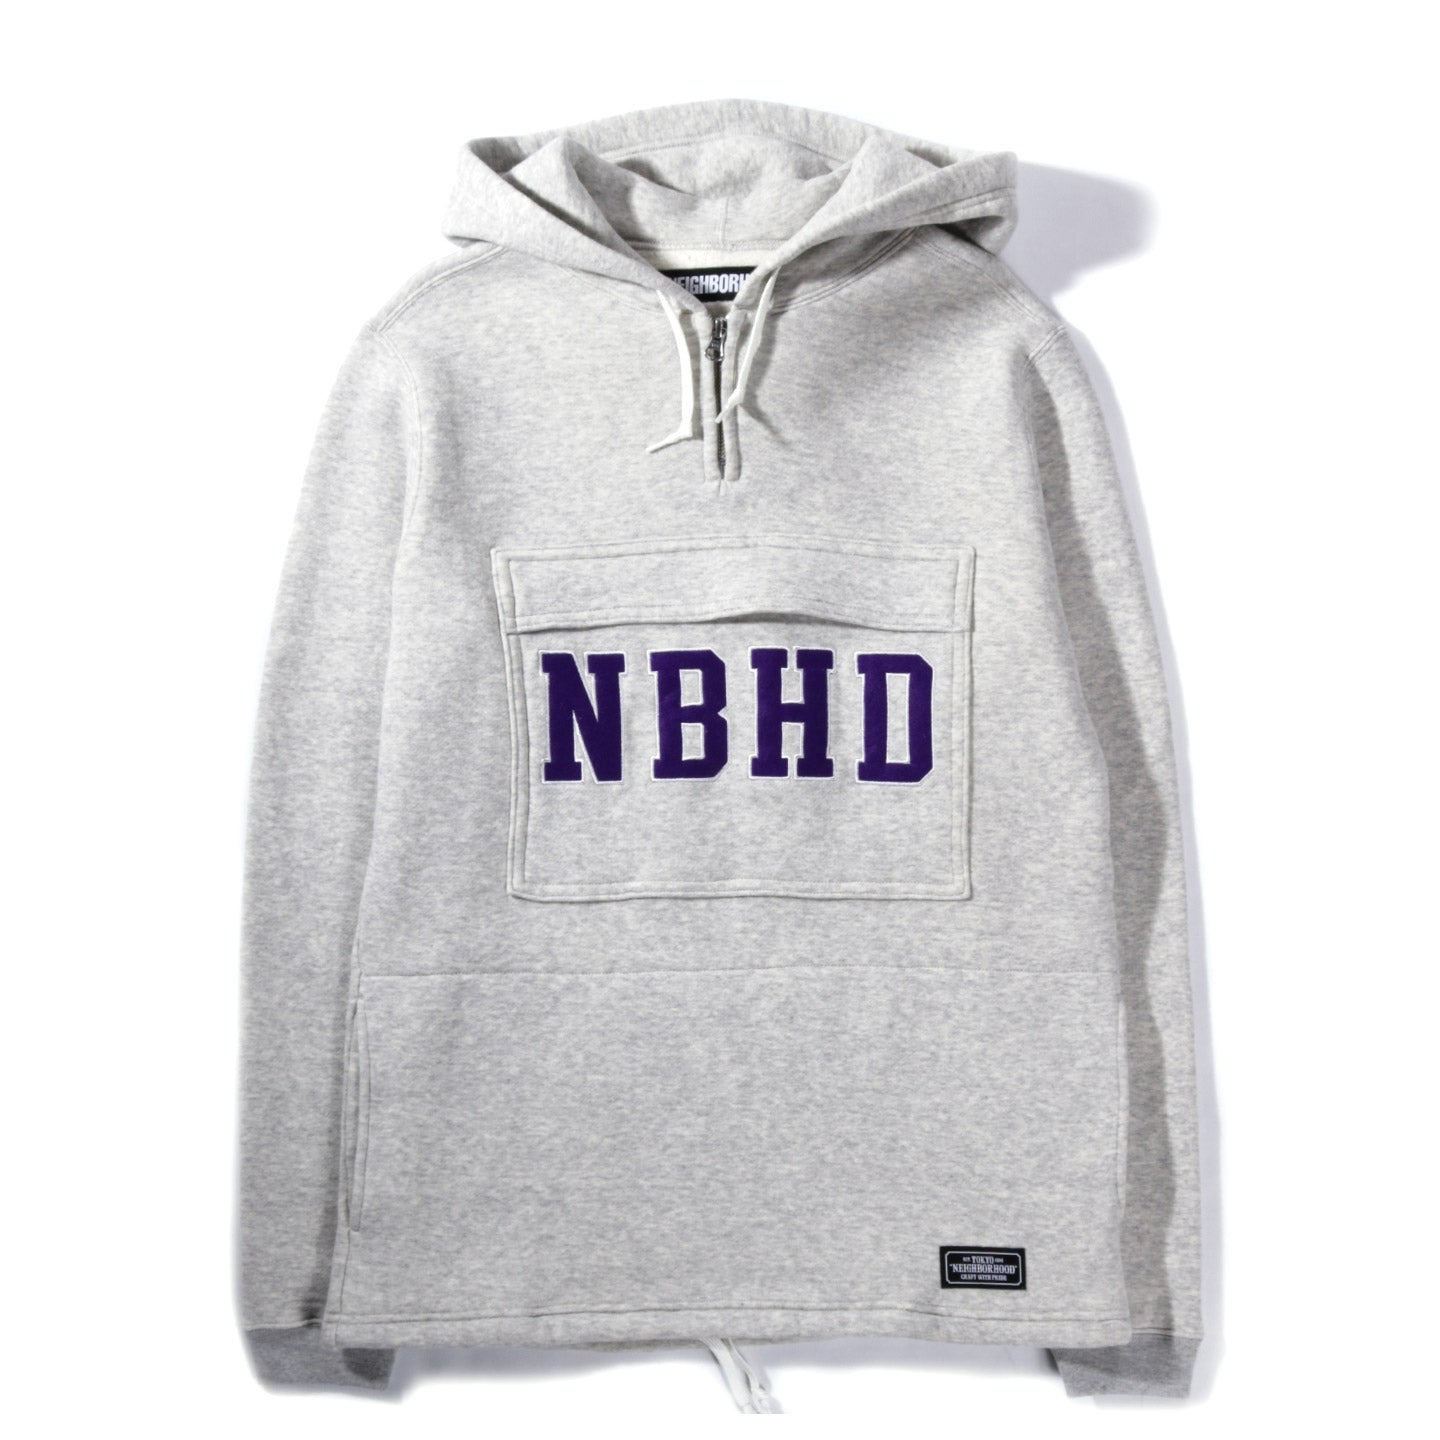 NEIGHBORHOOD LOGIC HOODED SWEATSHIRT GRAY